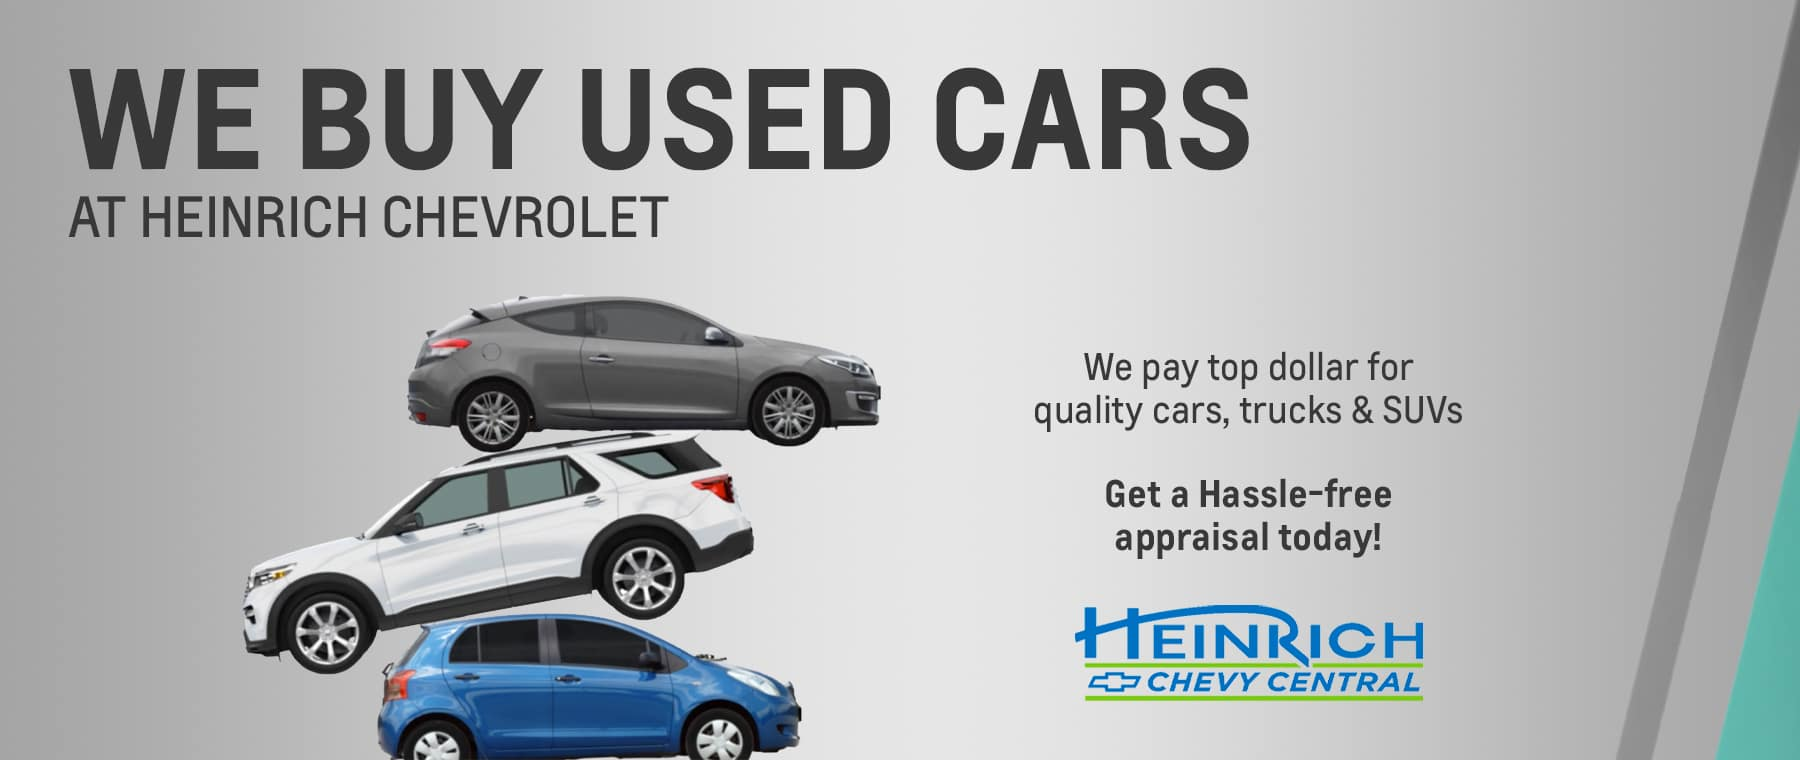 We want to buy your used vehicle and will pay the best price